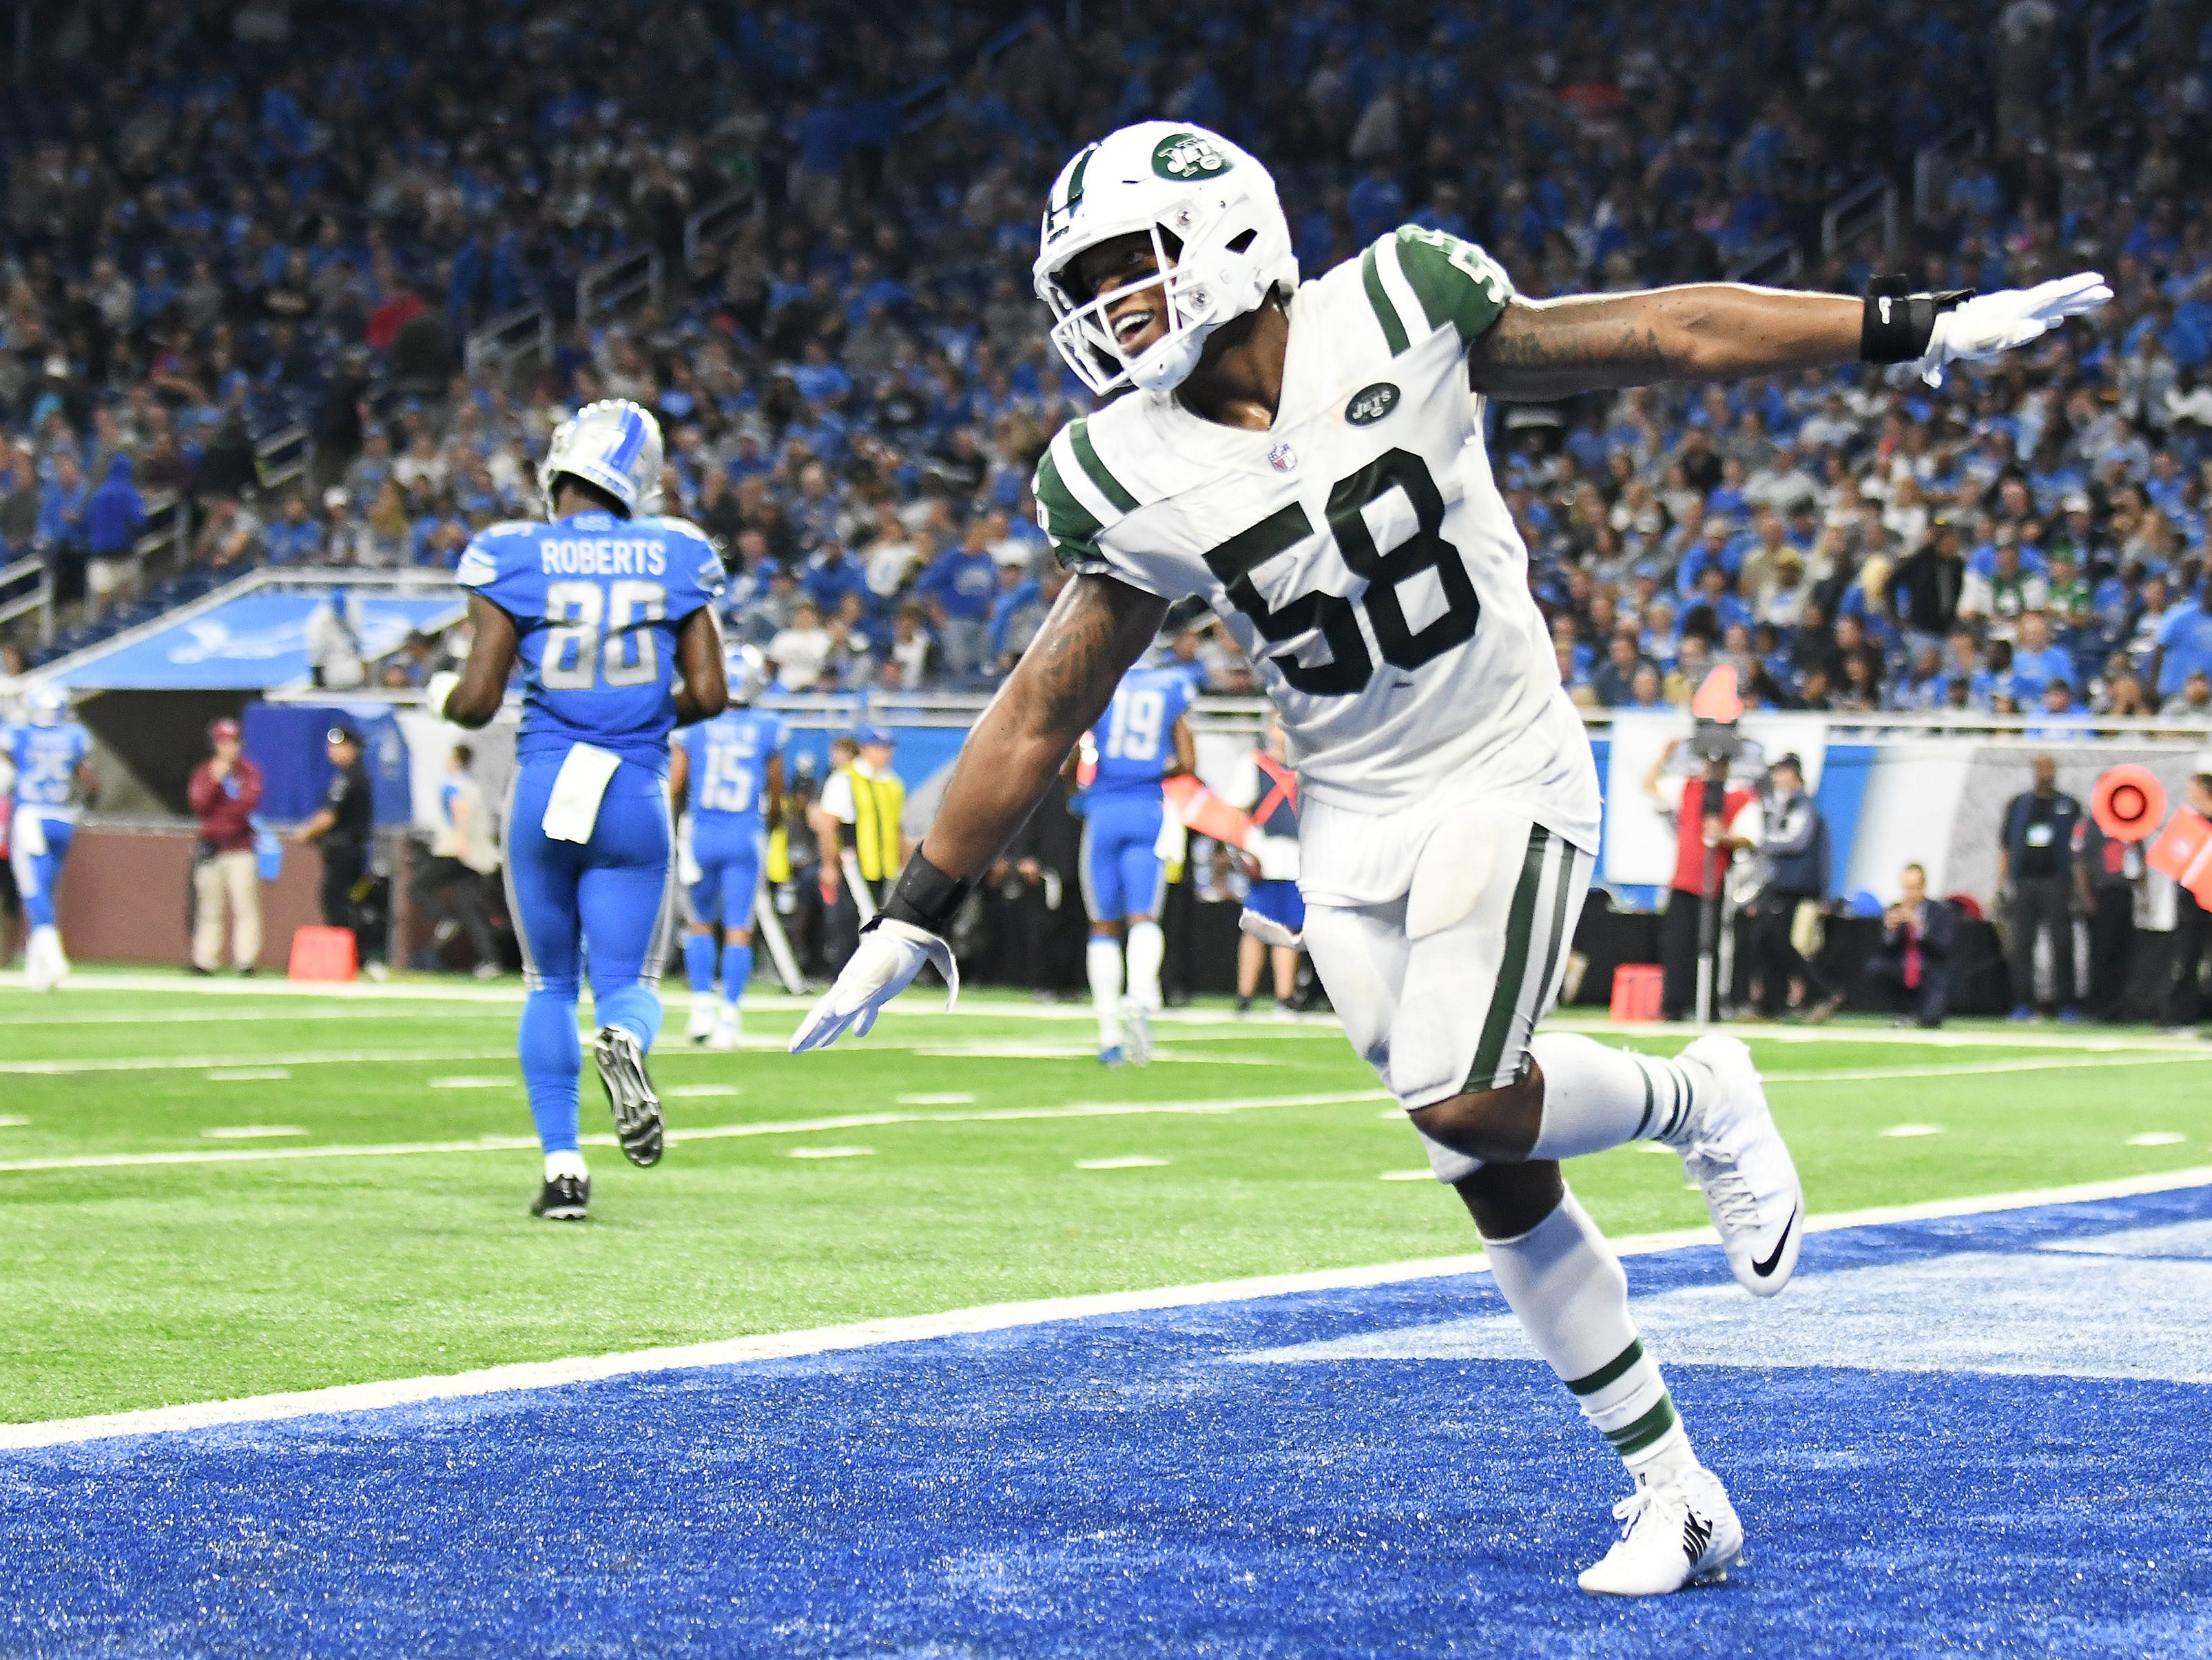 Jets linebacker Darron Lee celebrates an interception and touchdown in the fourth quarter.